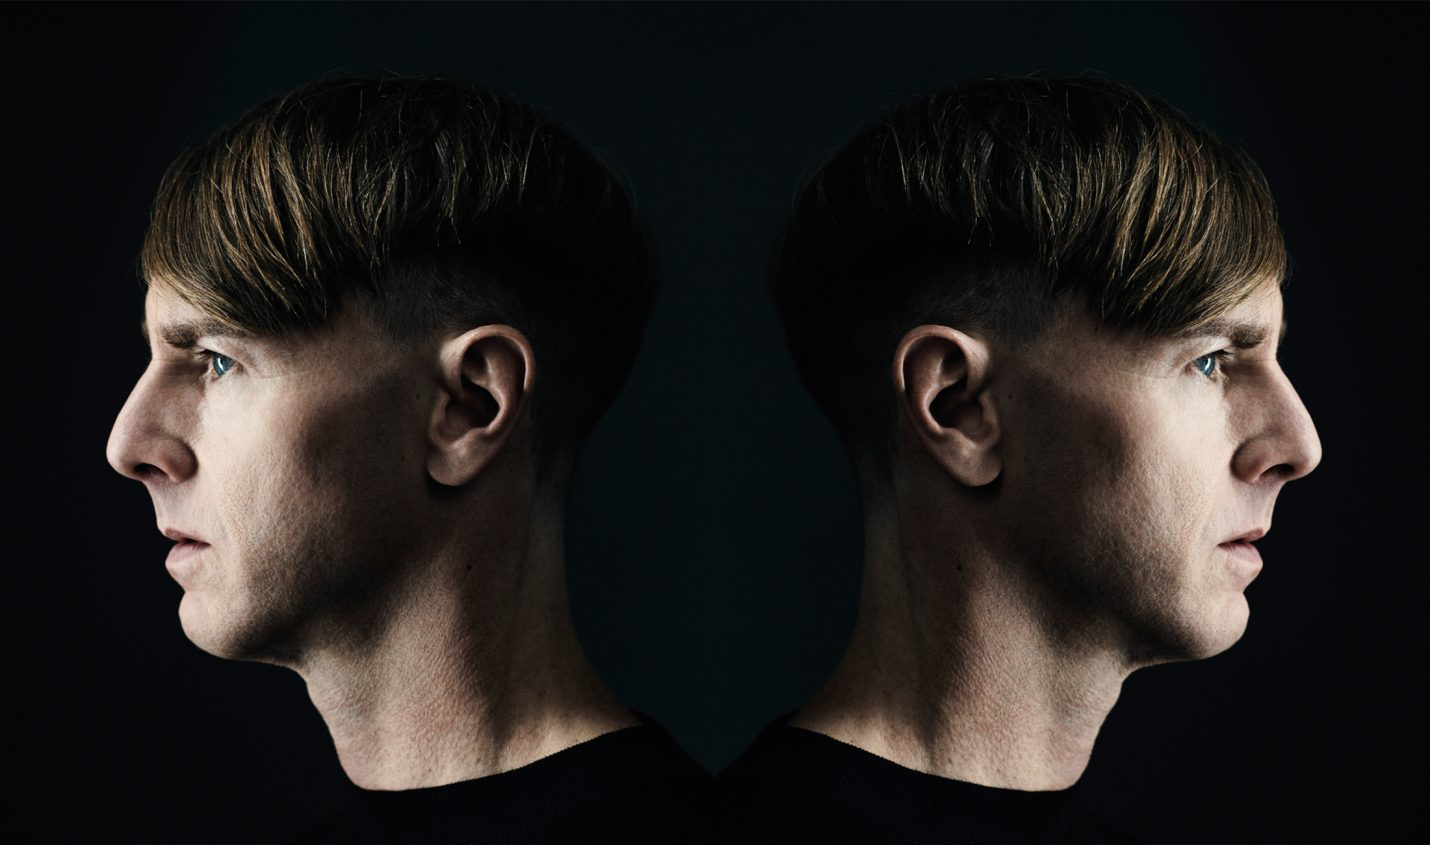 CLOSE COMBINED: Audiovisuelles Mix-Album und App von Richie Hawtin - DJ LAB